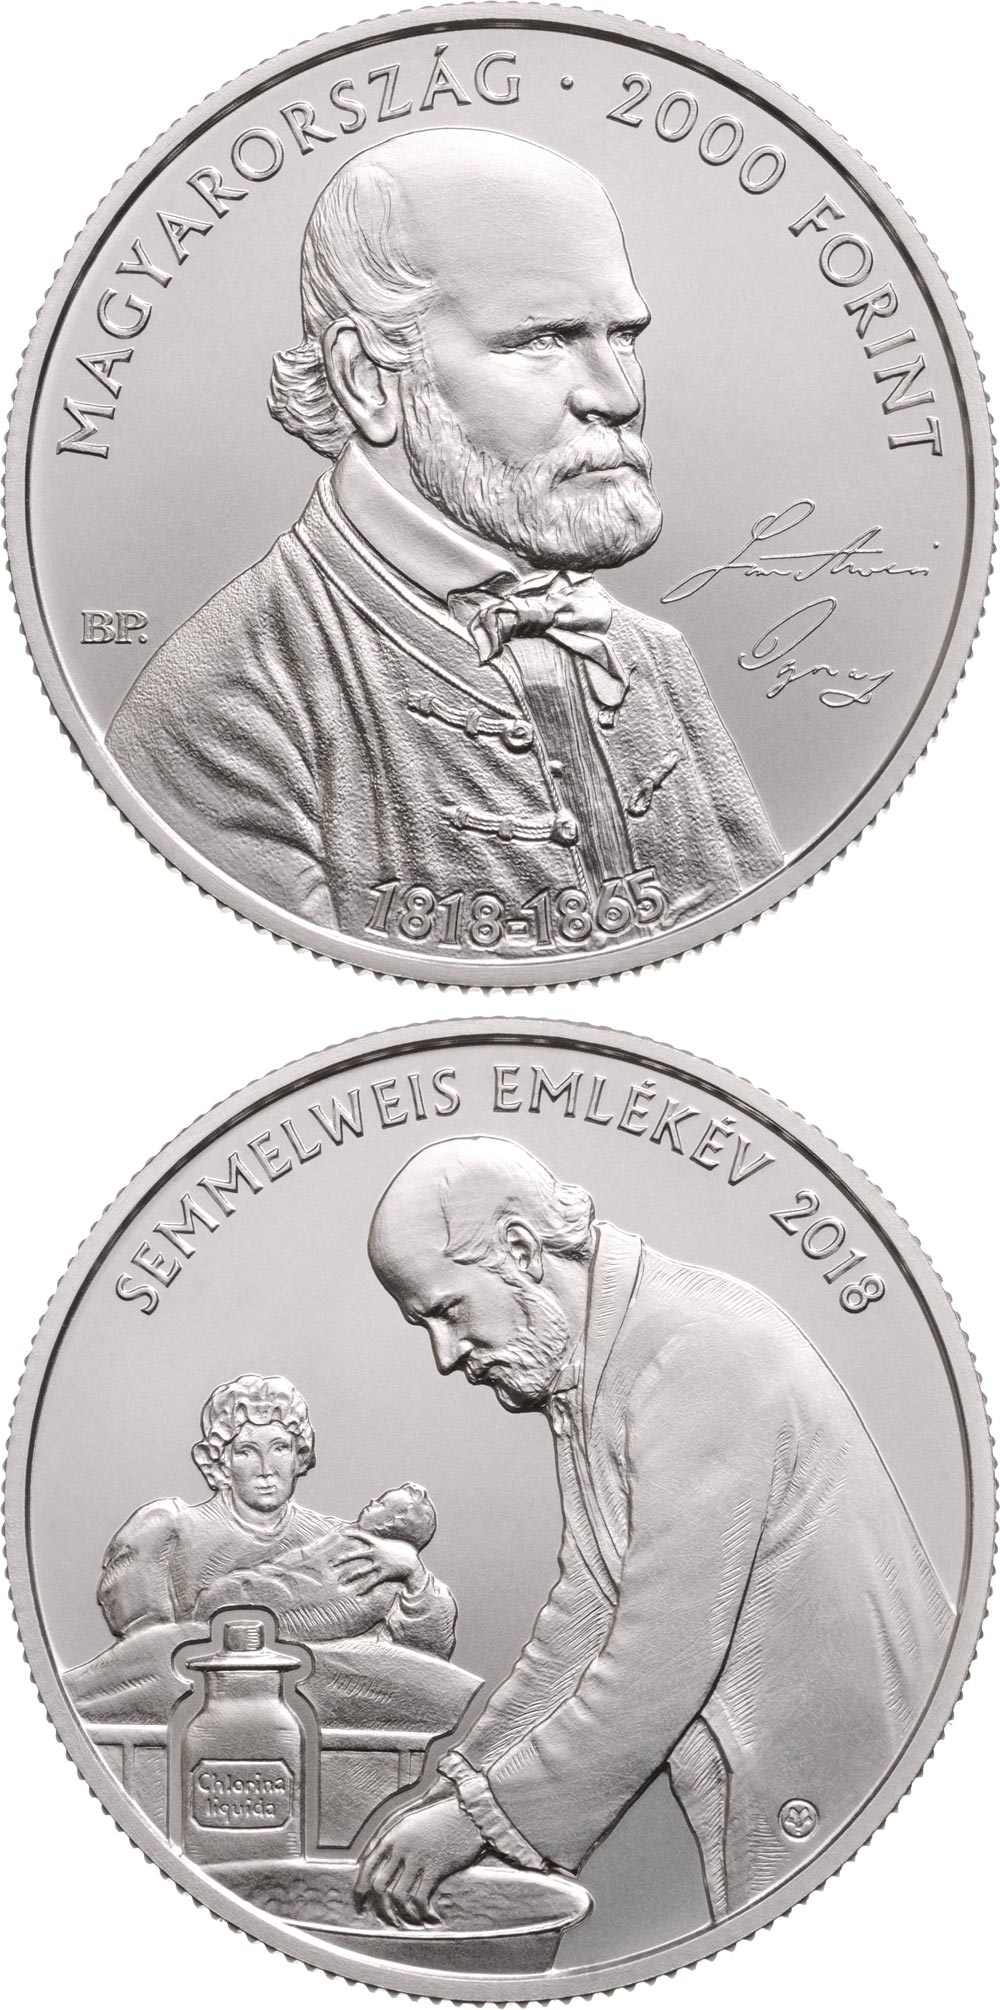 Image of 200th Anniversary of the Birth of Ignác Semmelweis (1818-1865) – 2000 forint coin Hungary 2018.  The Brass coin is of BU quality.